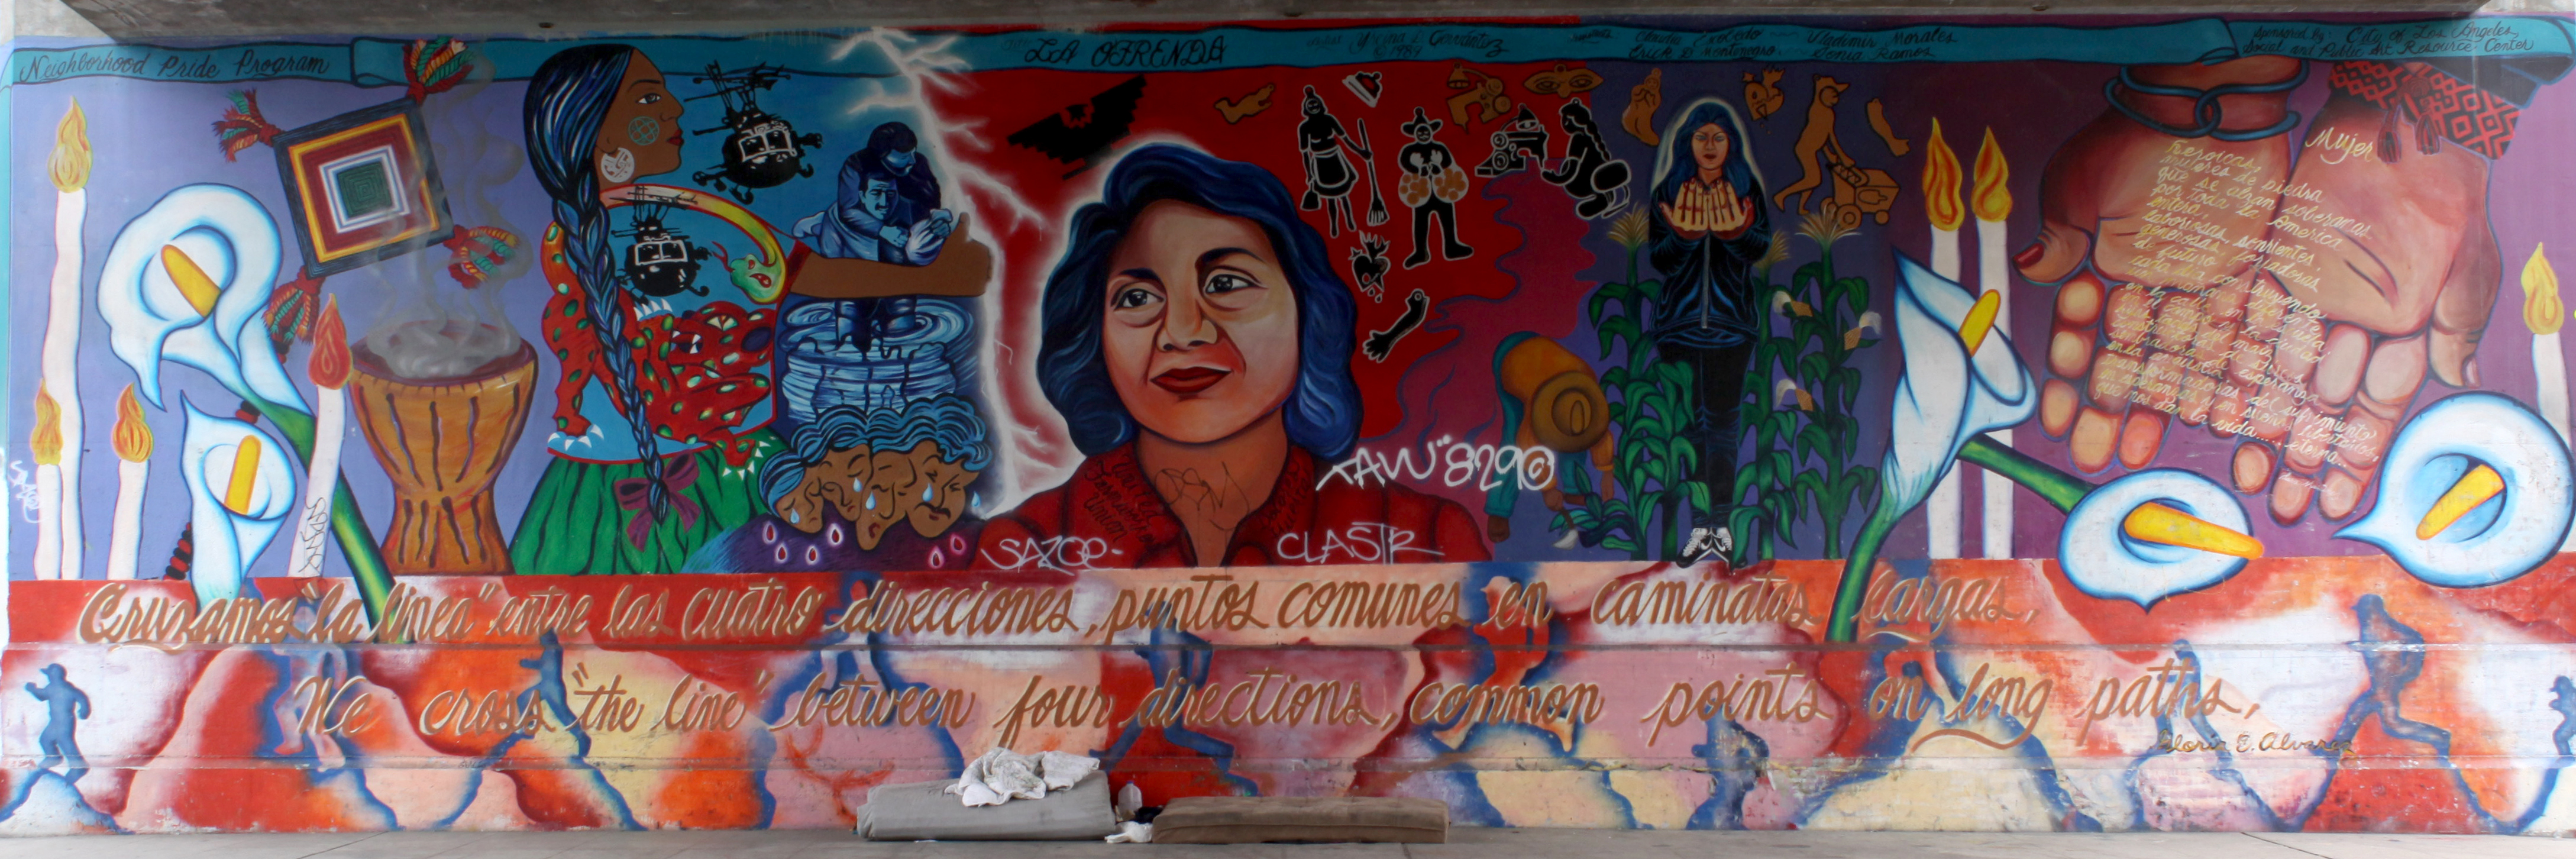 A colorful mural depicting Dolores Huerta and images/symbols associated with her union organizing work